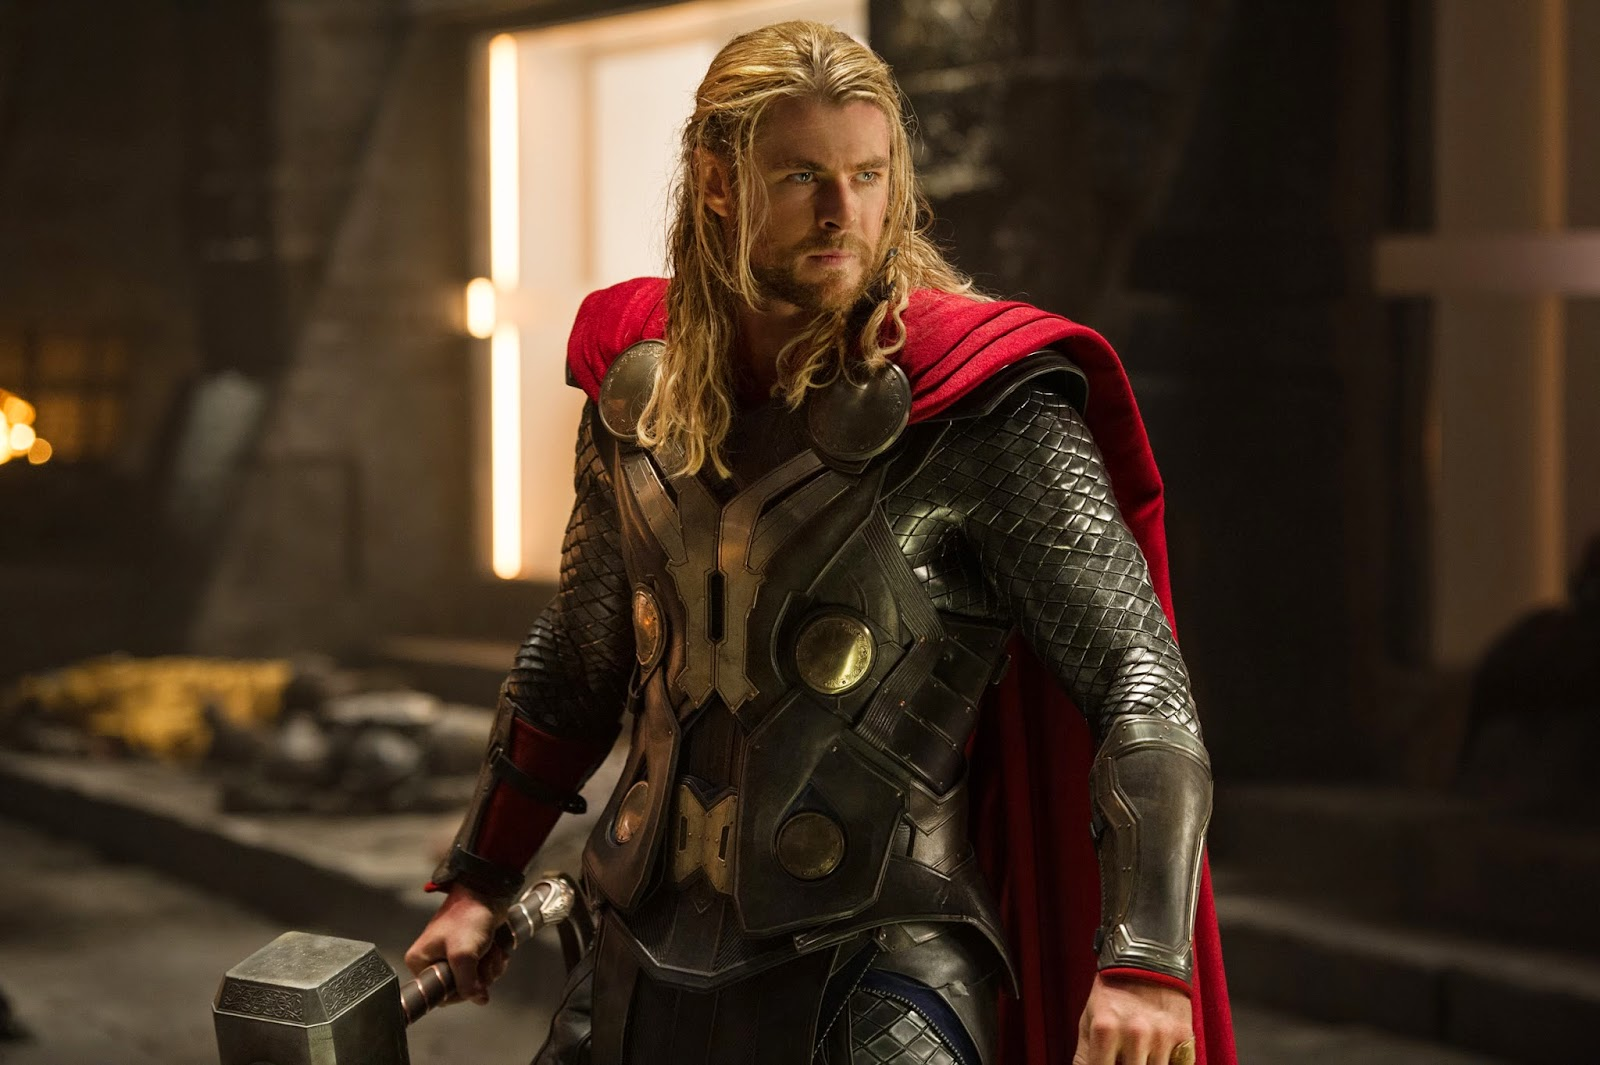 Chris Hemsworth as Thor in Thor: The Dark World (2013)